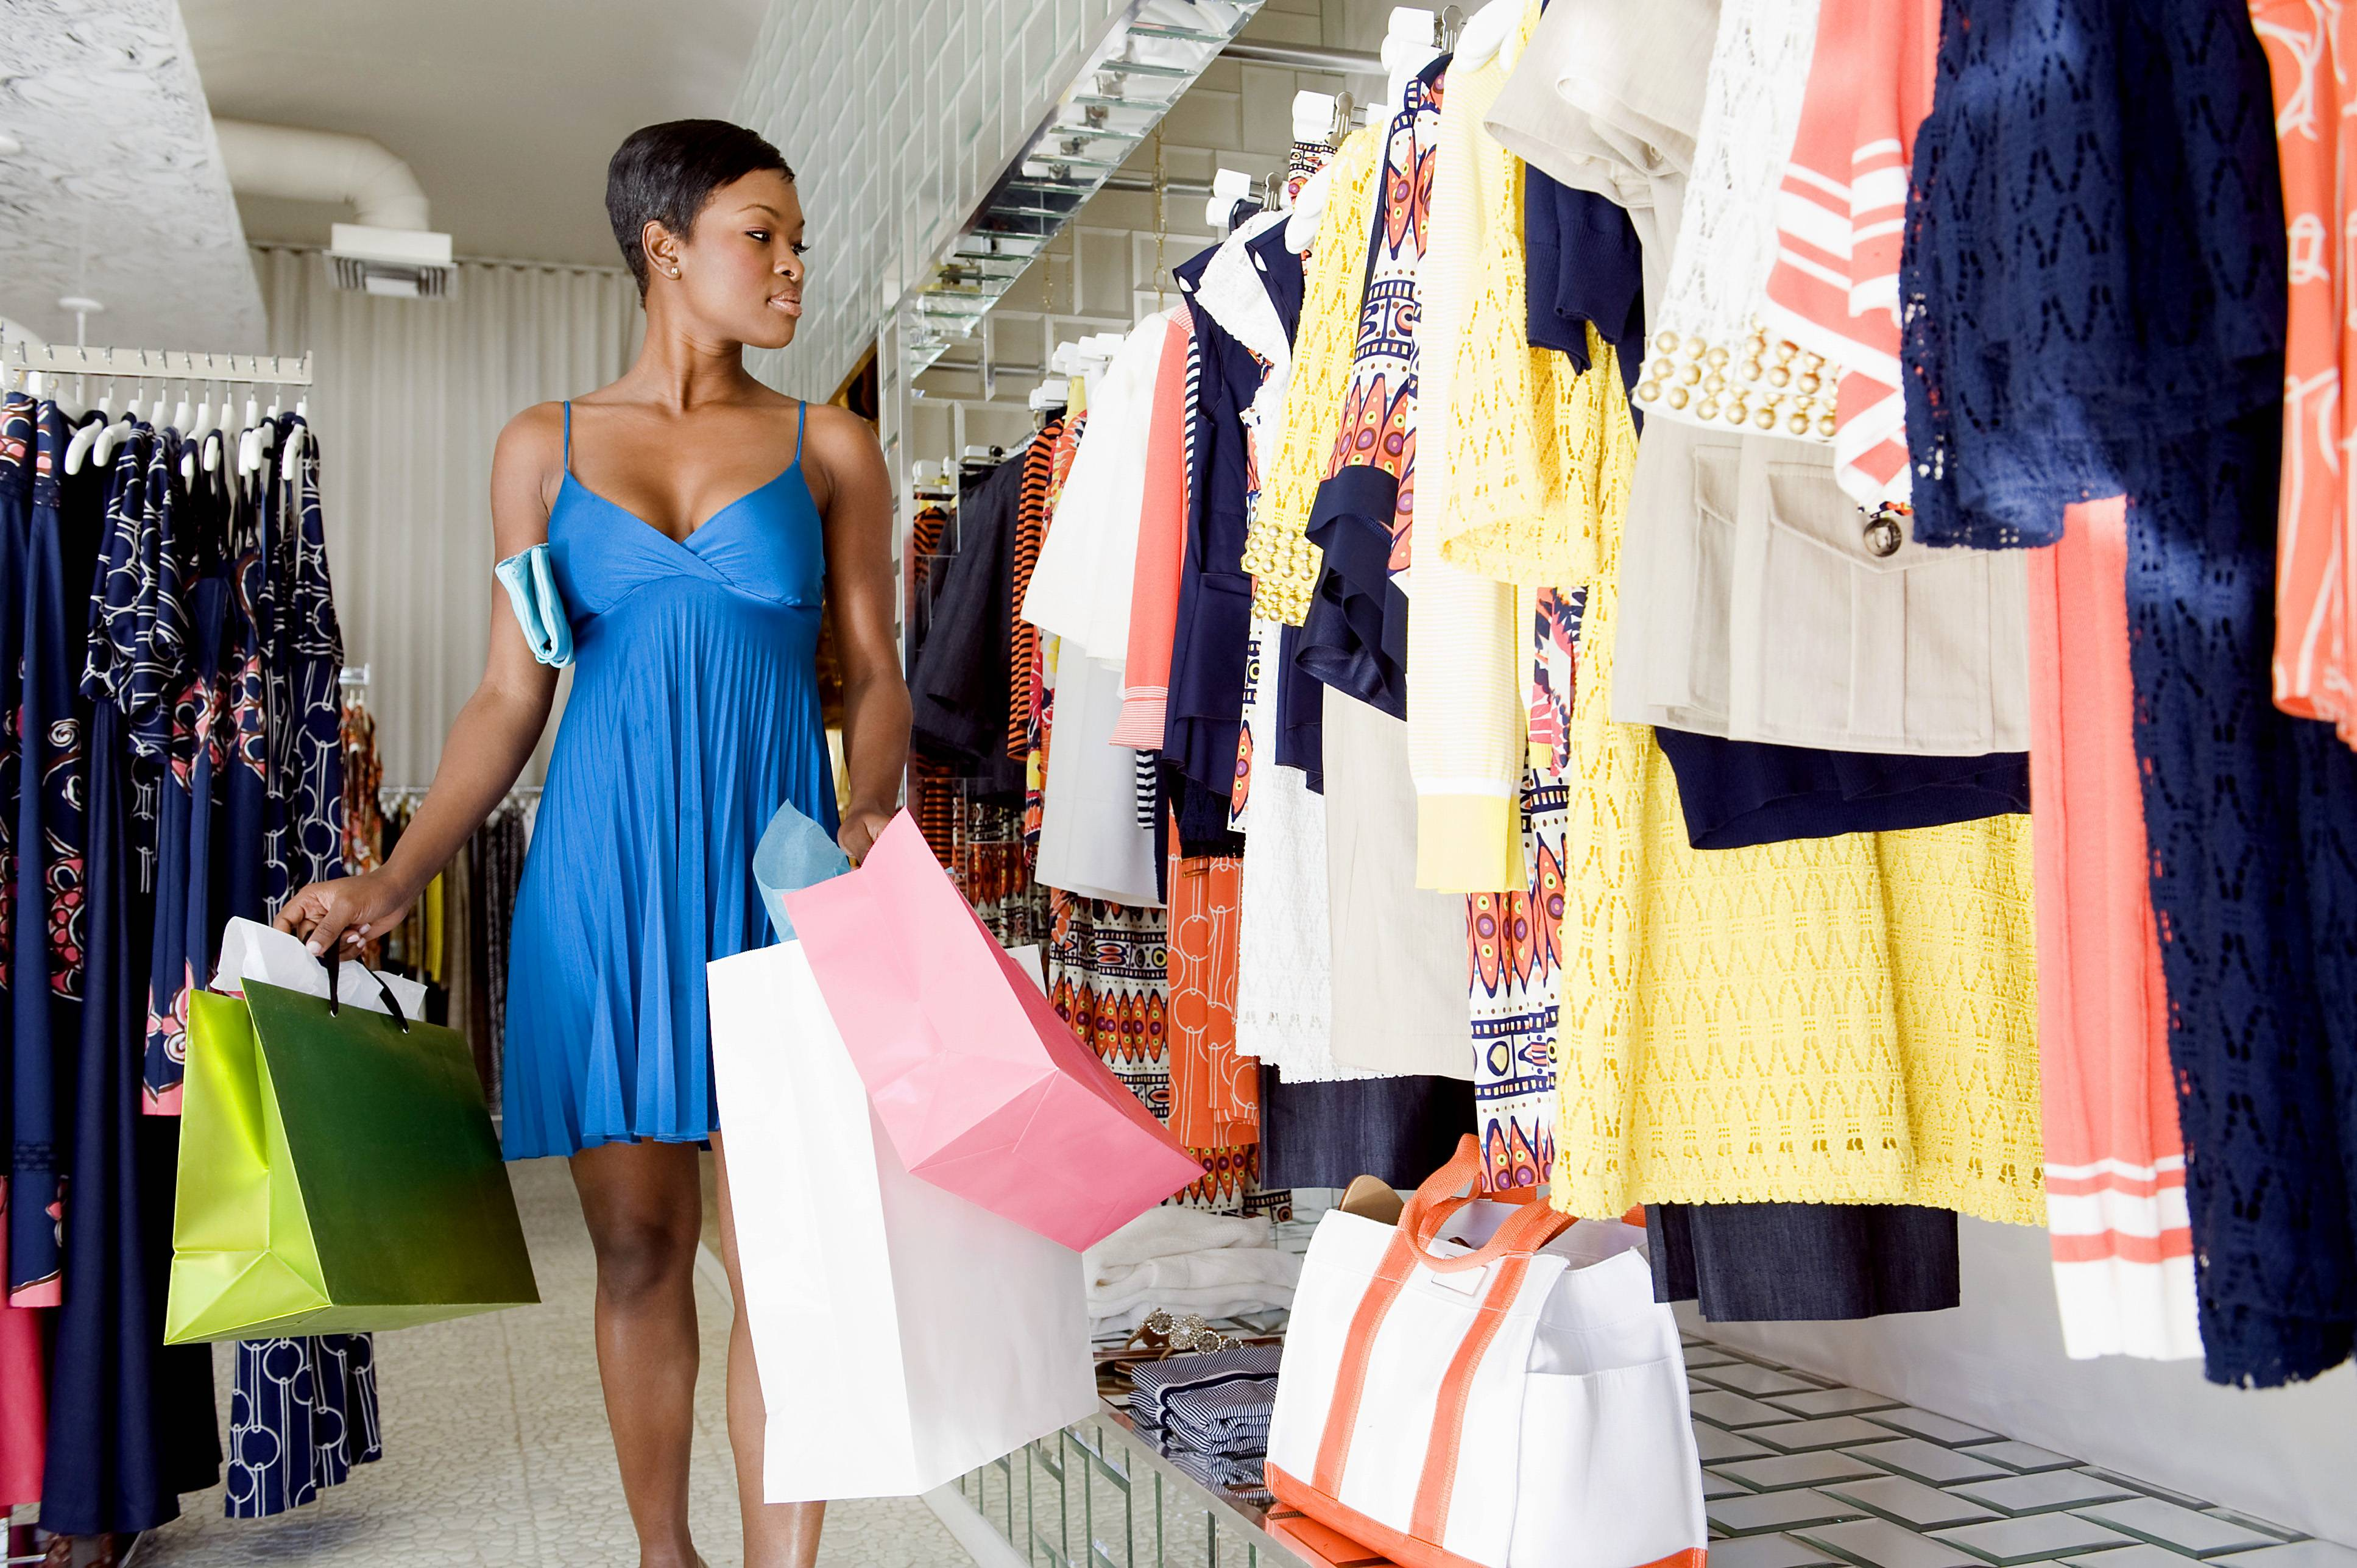 Shopping Spree - Who doesn't love to spend a little without feeling guilty? Take your special someone out on a day full of shopping and let them know money is no object (for this particular occasion that is). (Photo: moodboard/Getty Images)